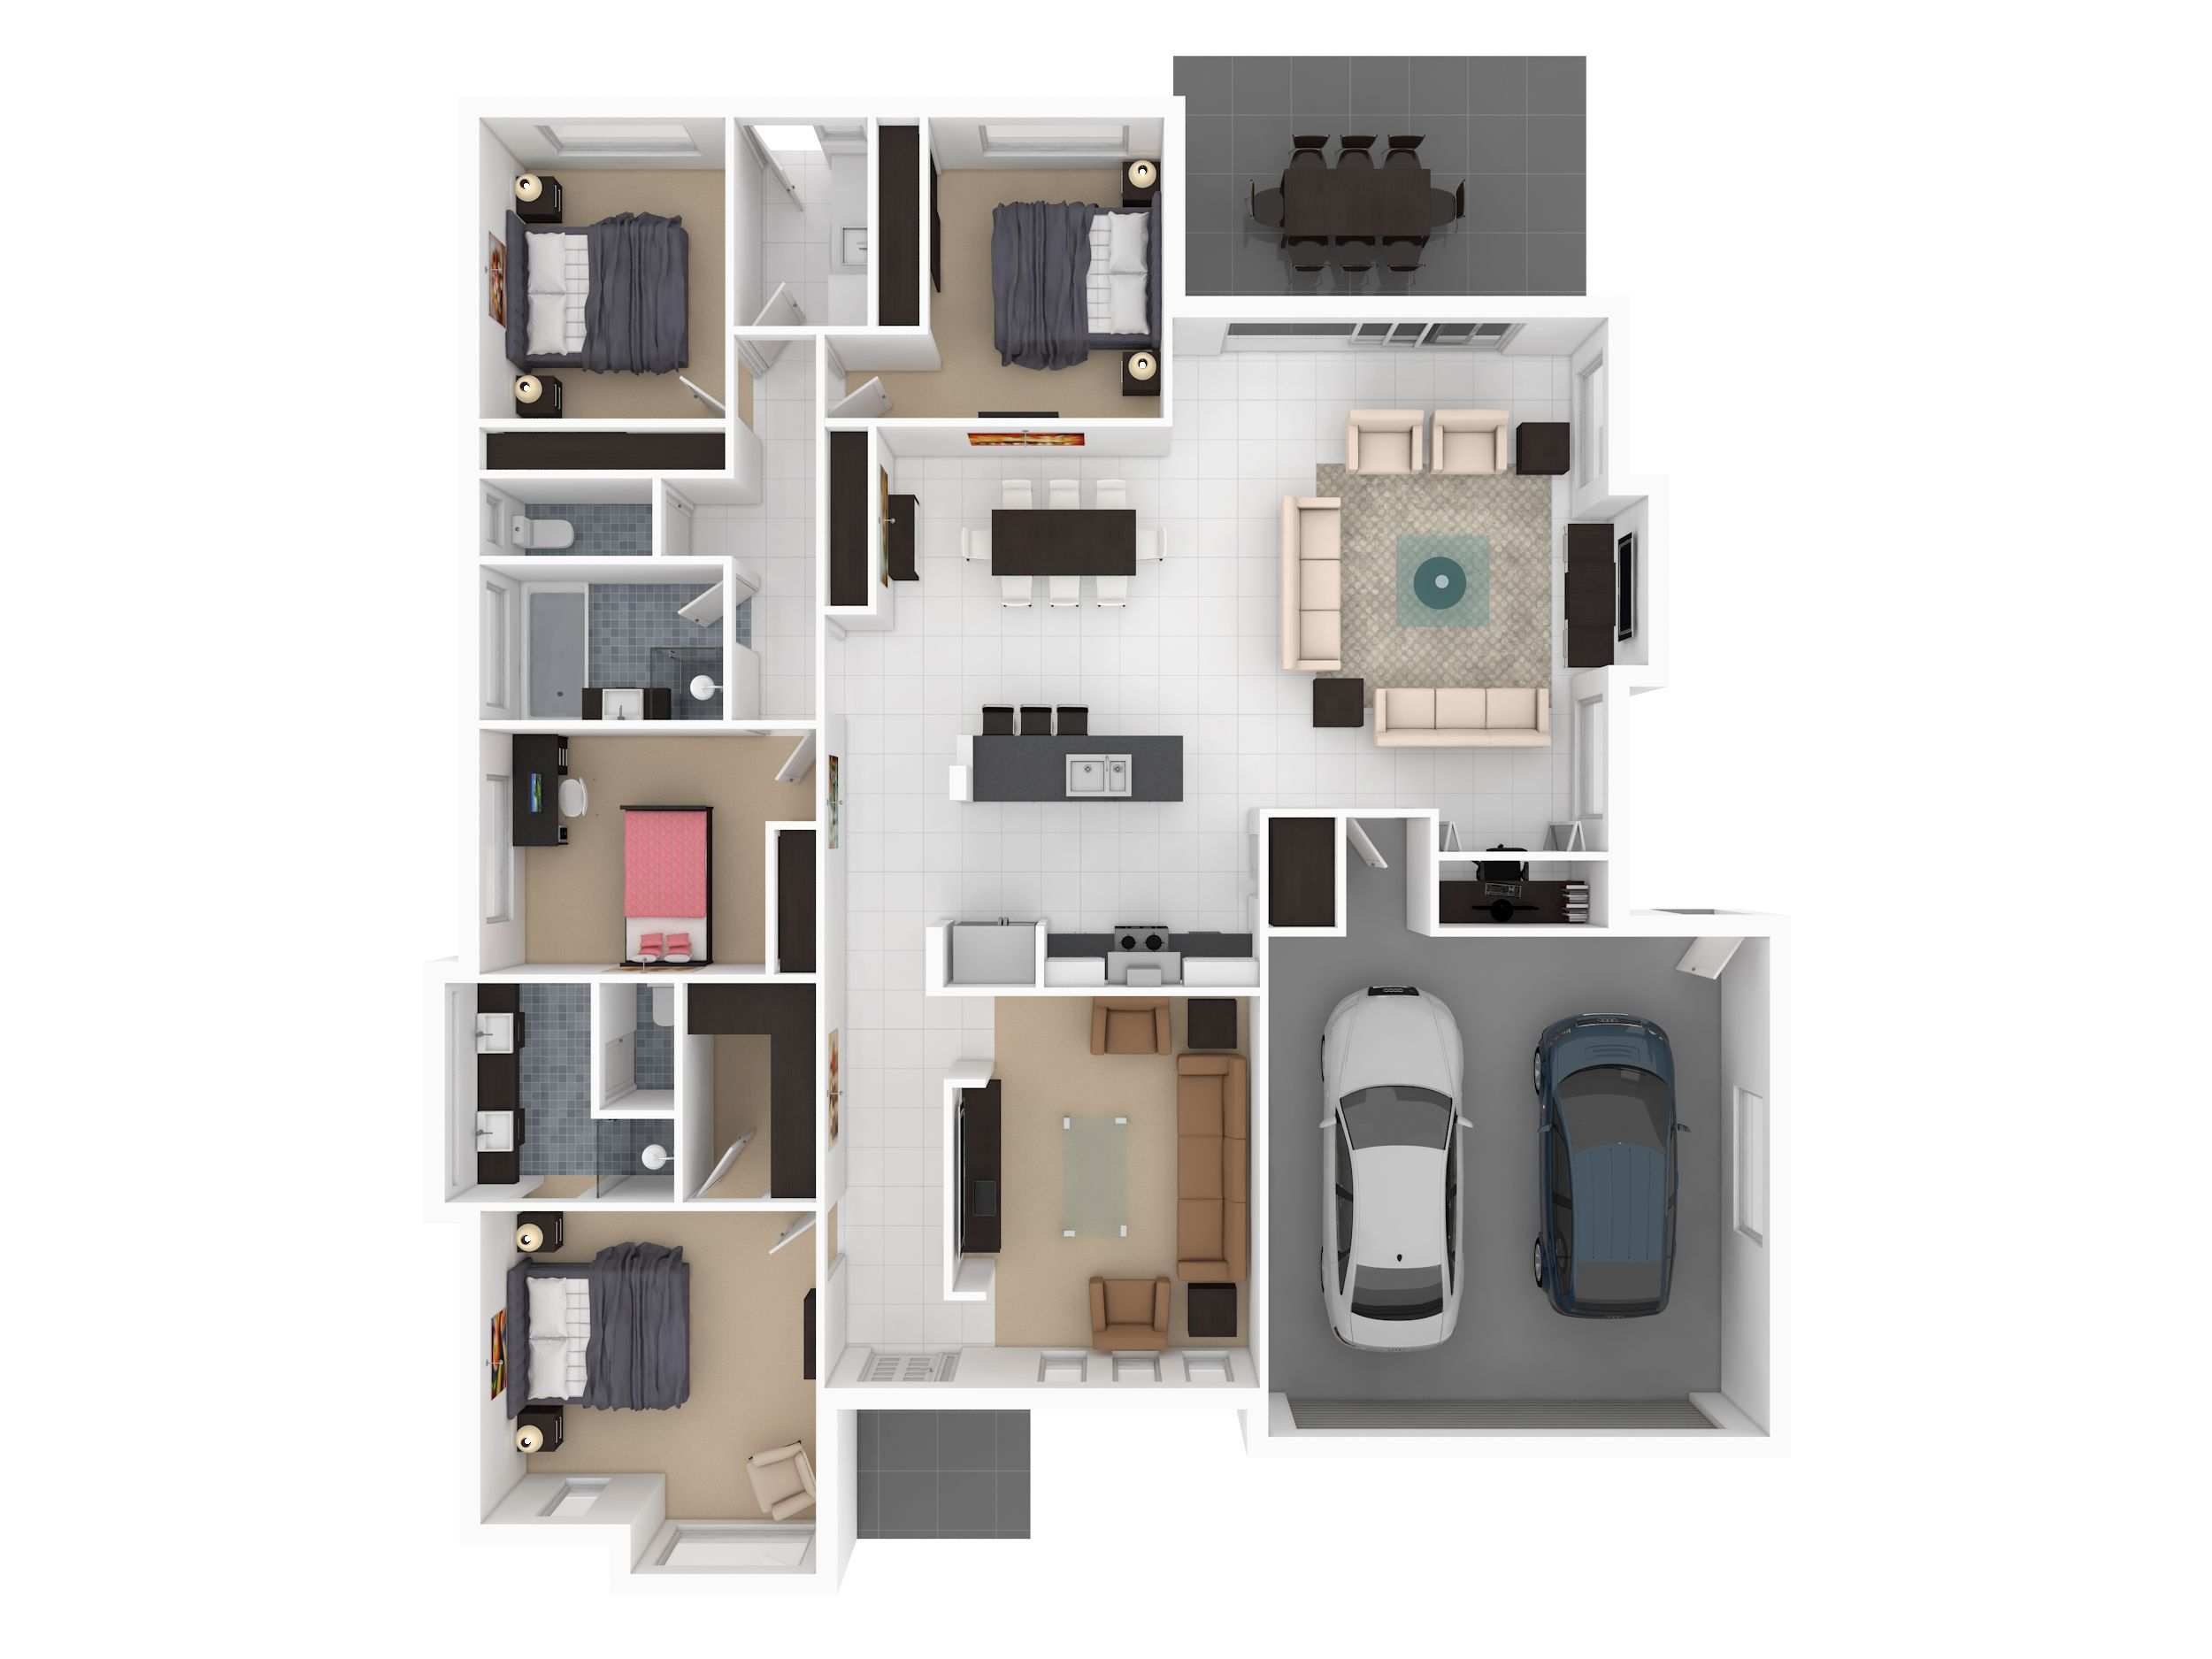 1000+ images about 3D House Plan on Pinterest - ^